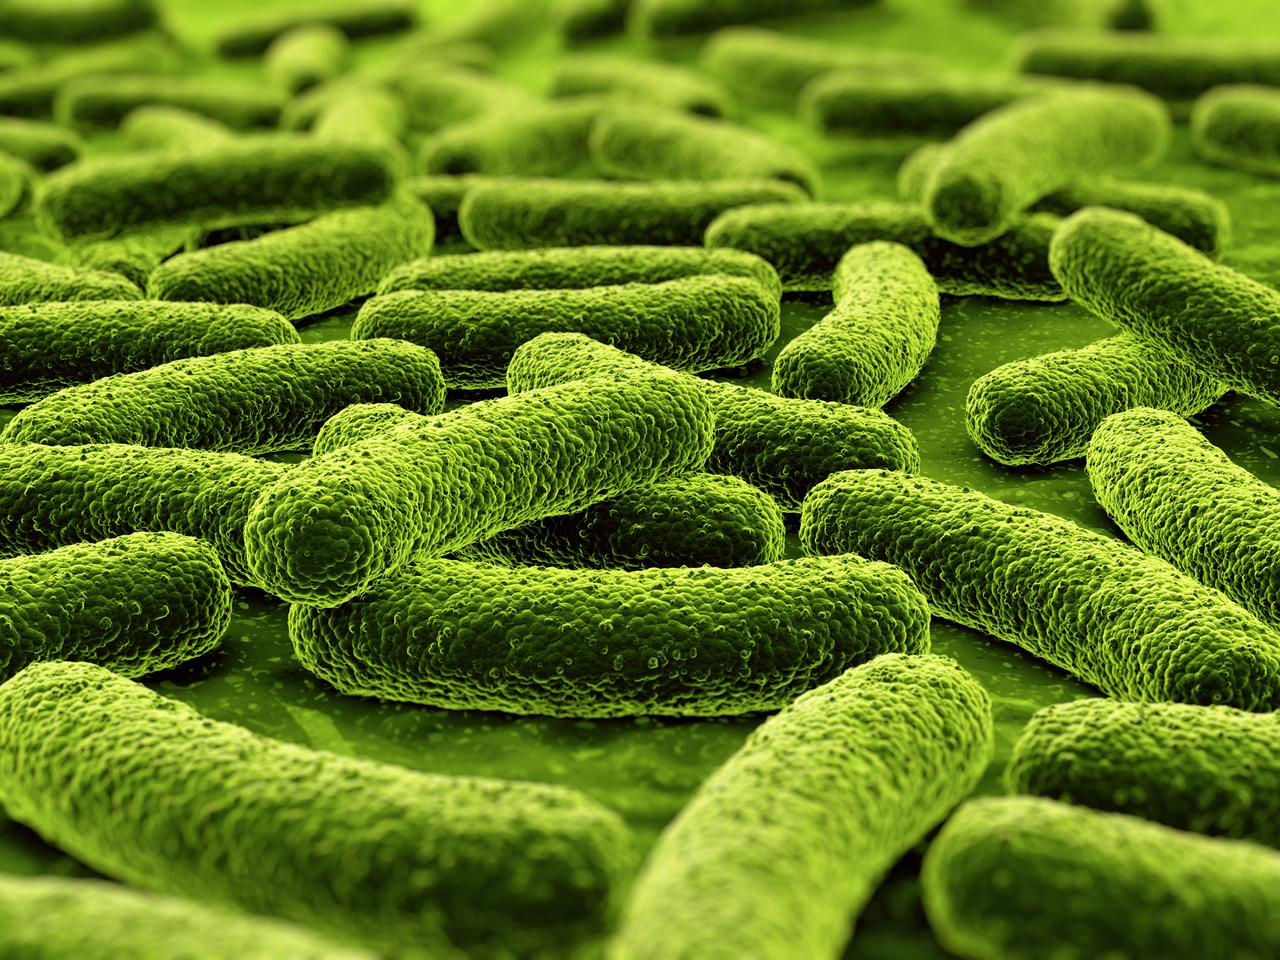 Scientists have engineered bacteria to produce a chemical calledtryptamine